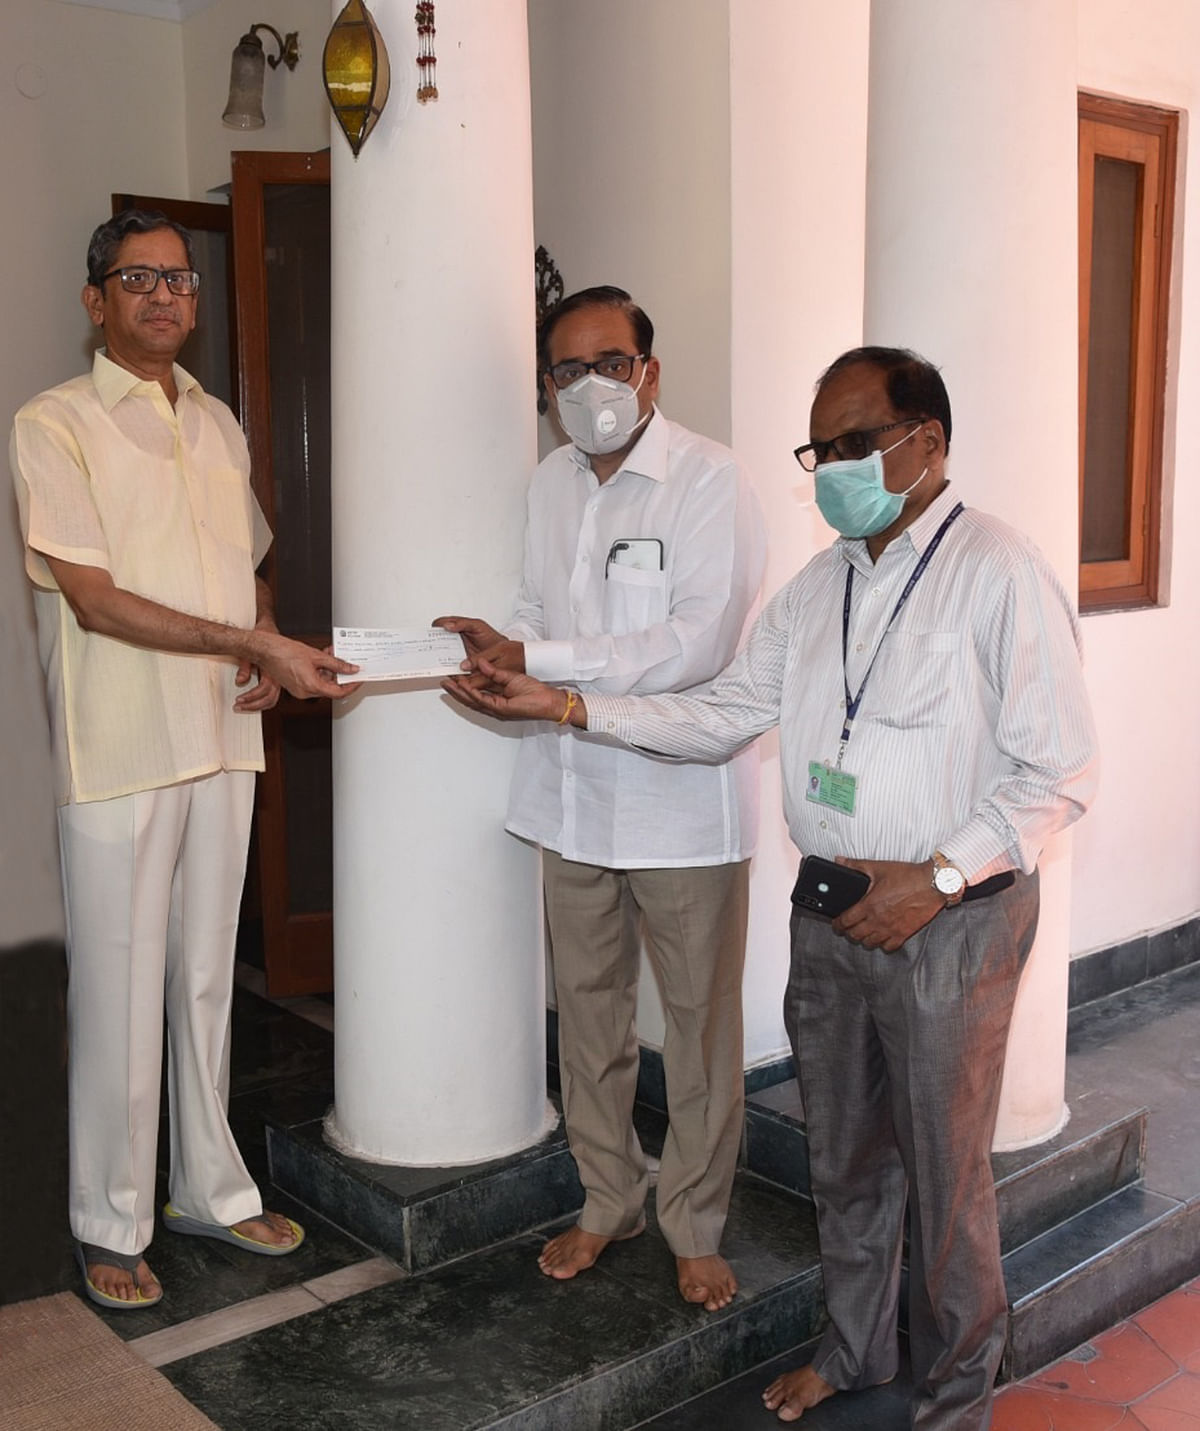 Justice Siddharth Mridul has contributed a sum of Rs 1.25 lakh to the Advocates' Welfare Fund, Bar Council of Delhi.